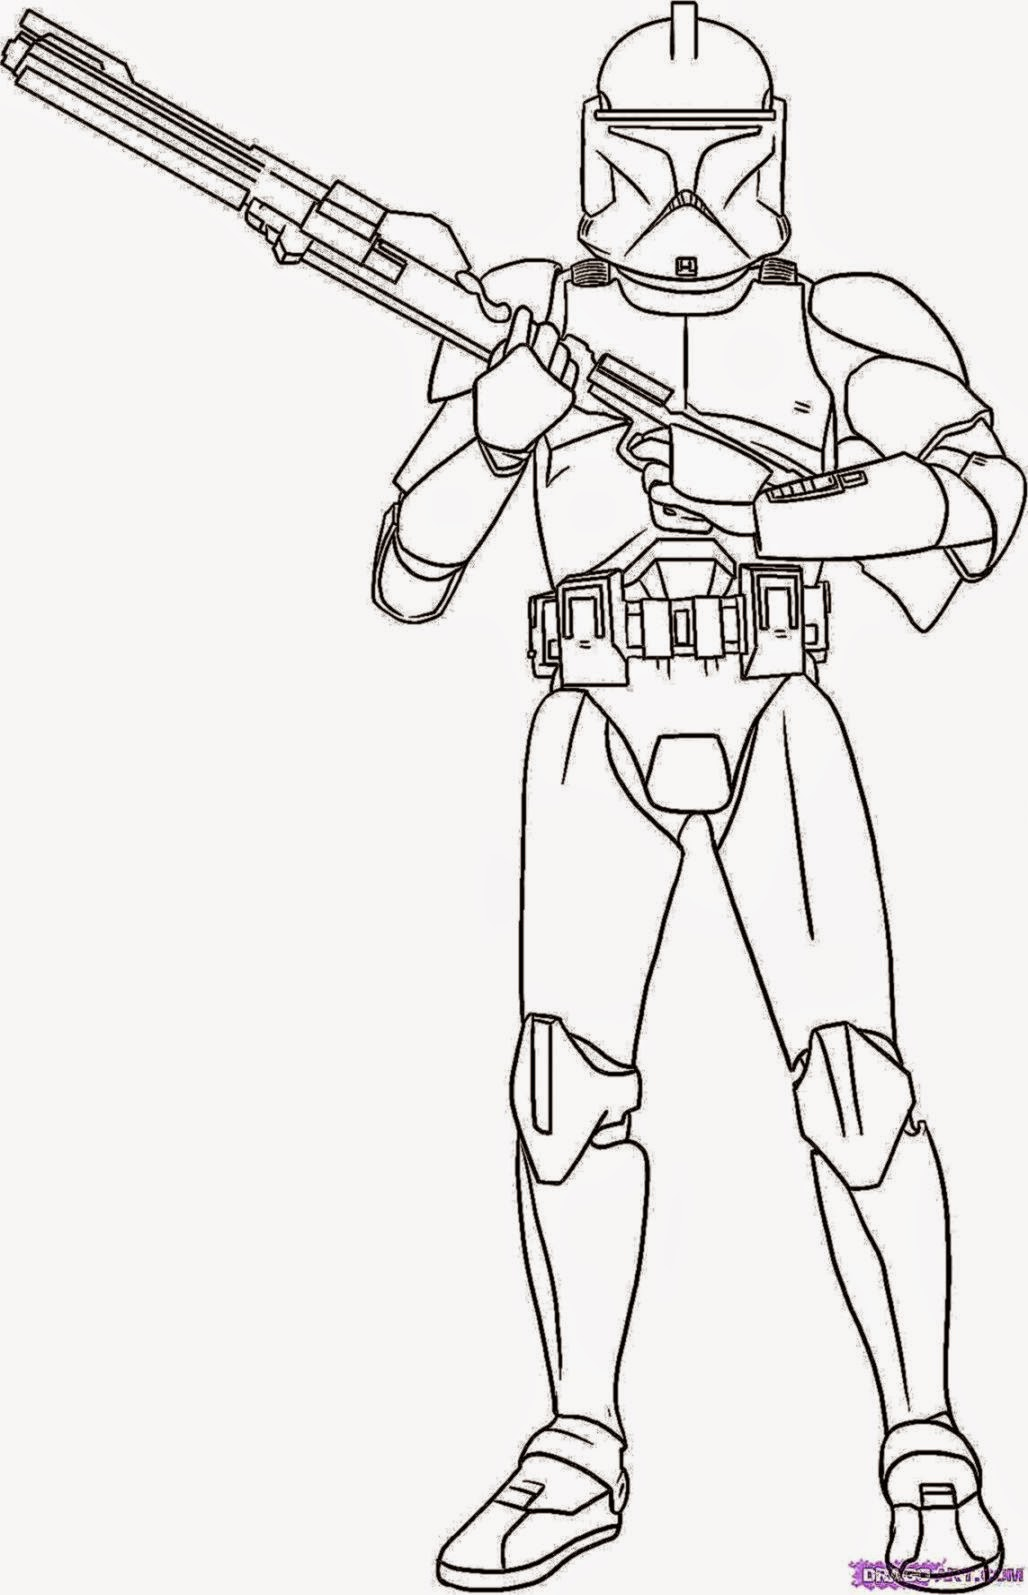 commander cody coloring pages - photo#1